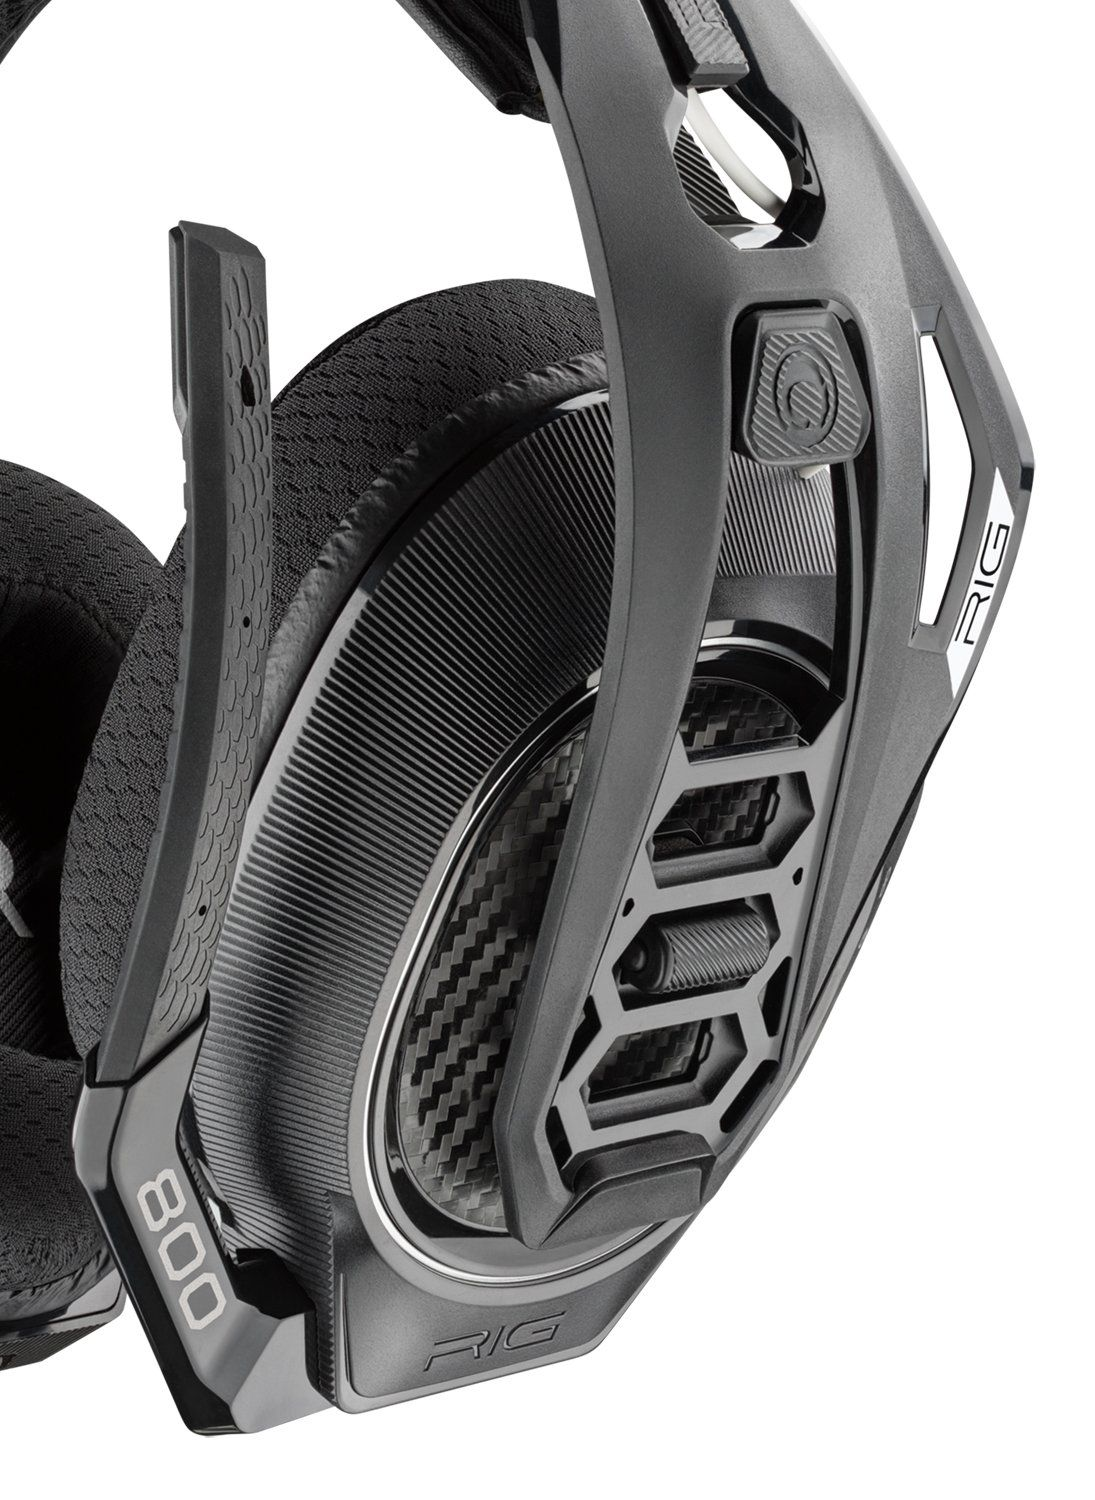 a7ced1a81e8 Plantronics Gaming Headset, RIG 800LX Wireless Gaming Headset for Xbox One  with prepaid Dolby Atmos Activation Code Included,#LX, #Wireless, #RIG, ...